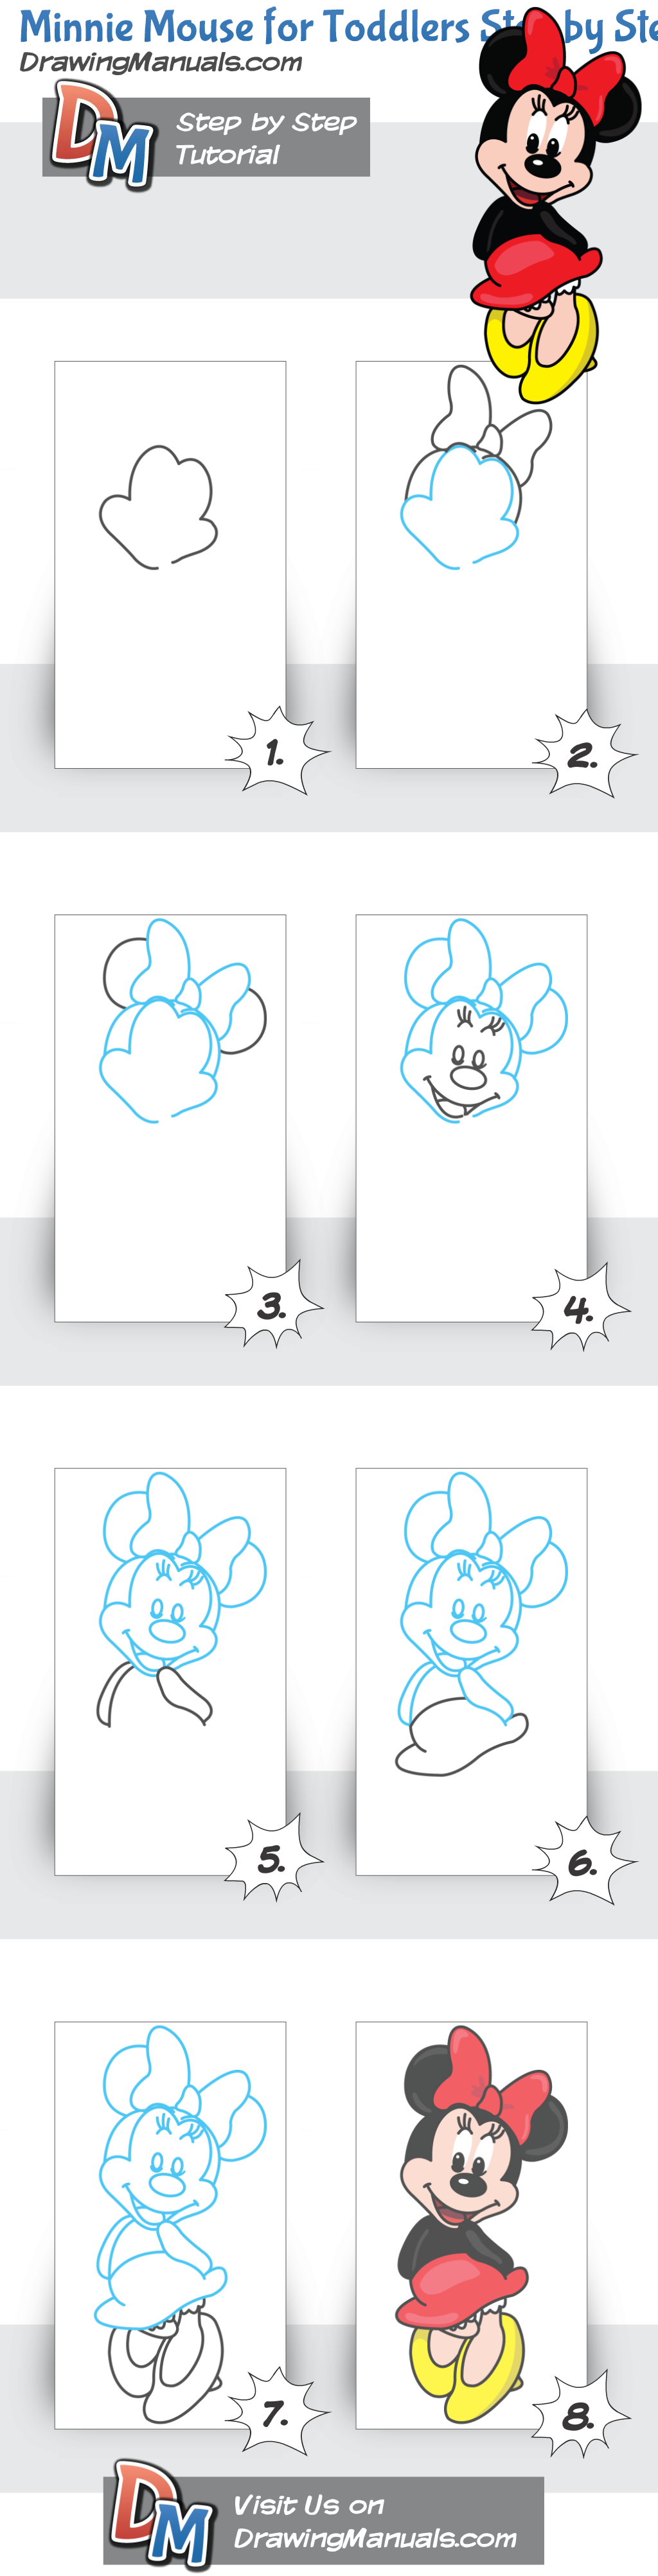 How to draw minnie mouse step by step doodles drawing for How to draw doodles step by step